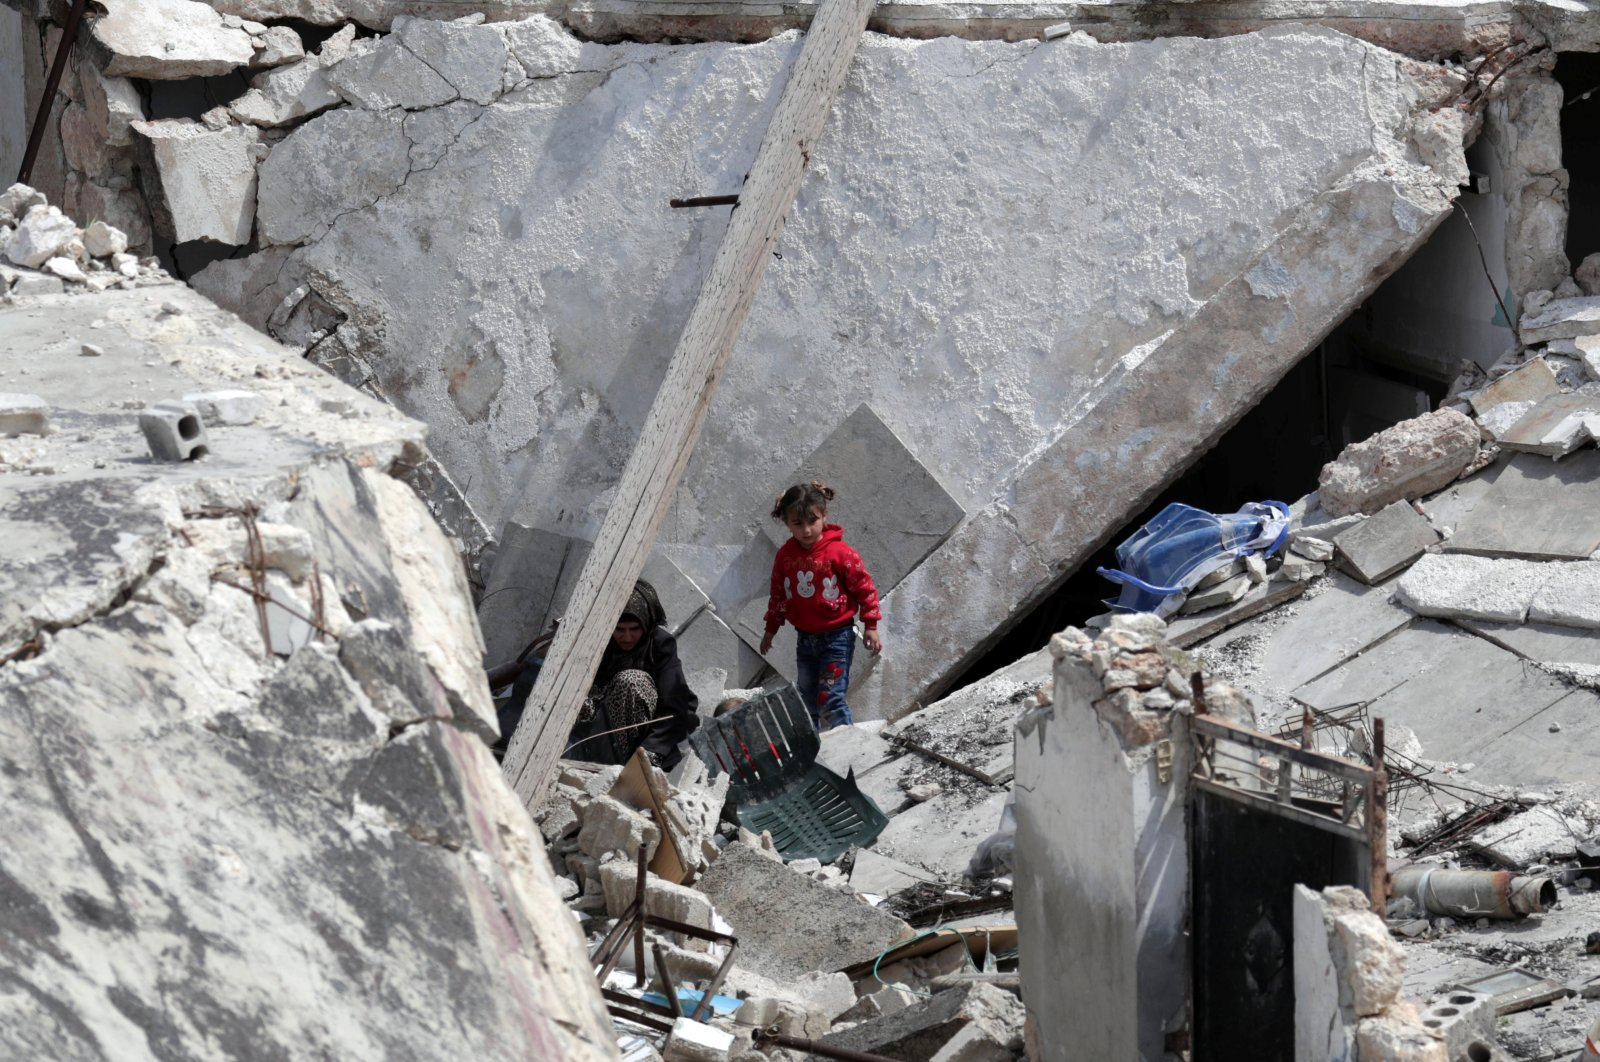 A girl stands near a woman on the rubble of a damaged building in the opposition-held town of Nairab, in northwest Syria's Idlib region, Syria April 17, 2020. REUTERS